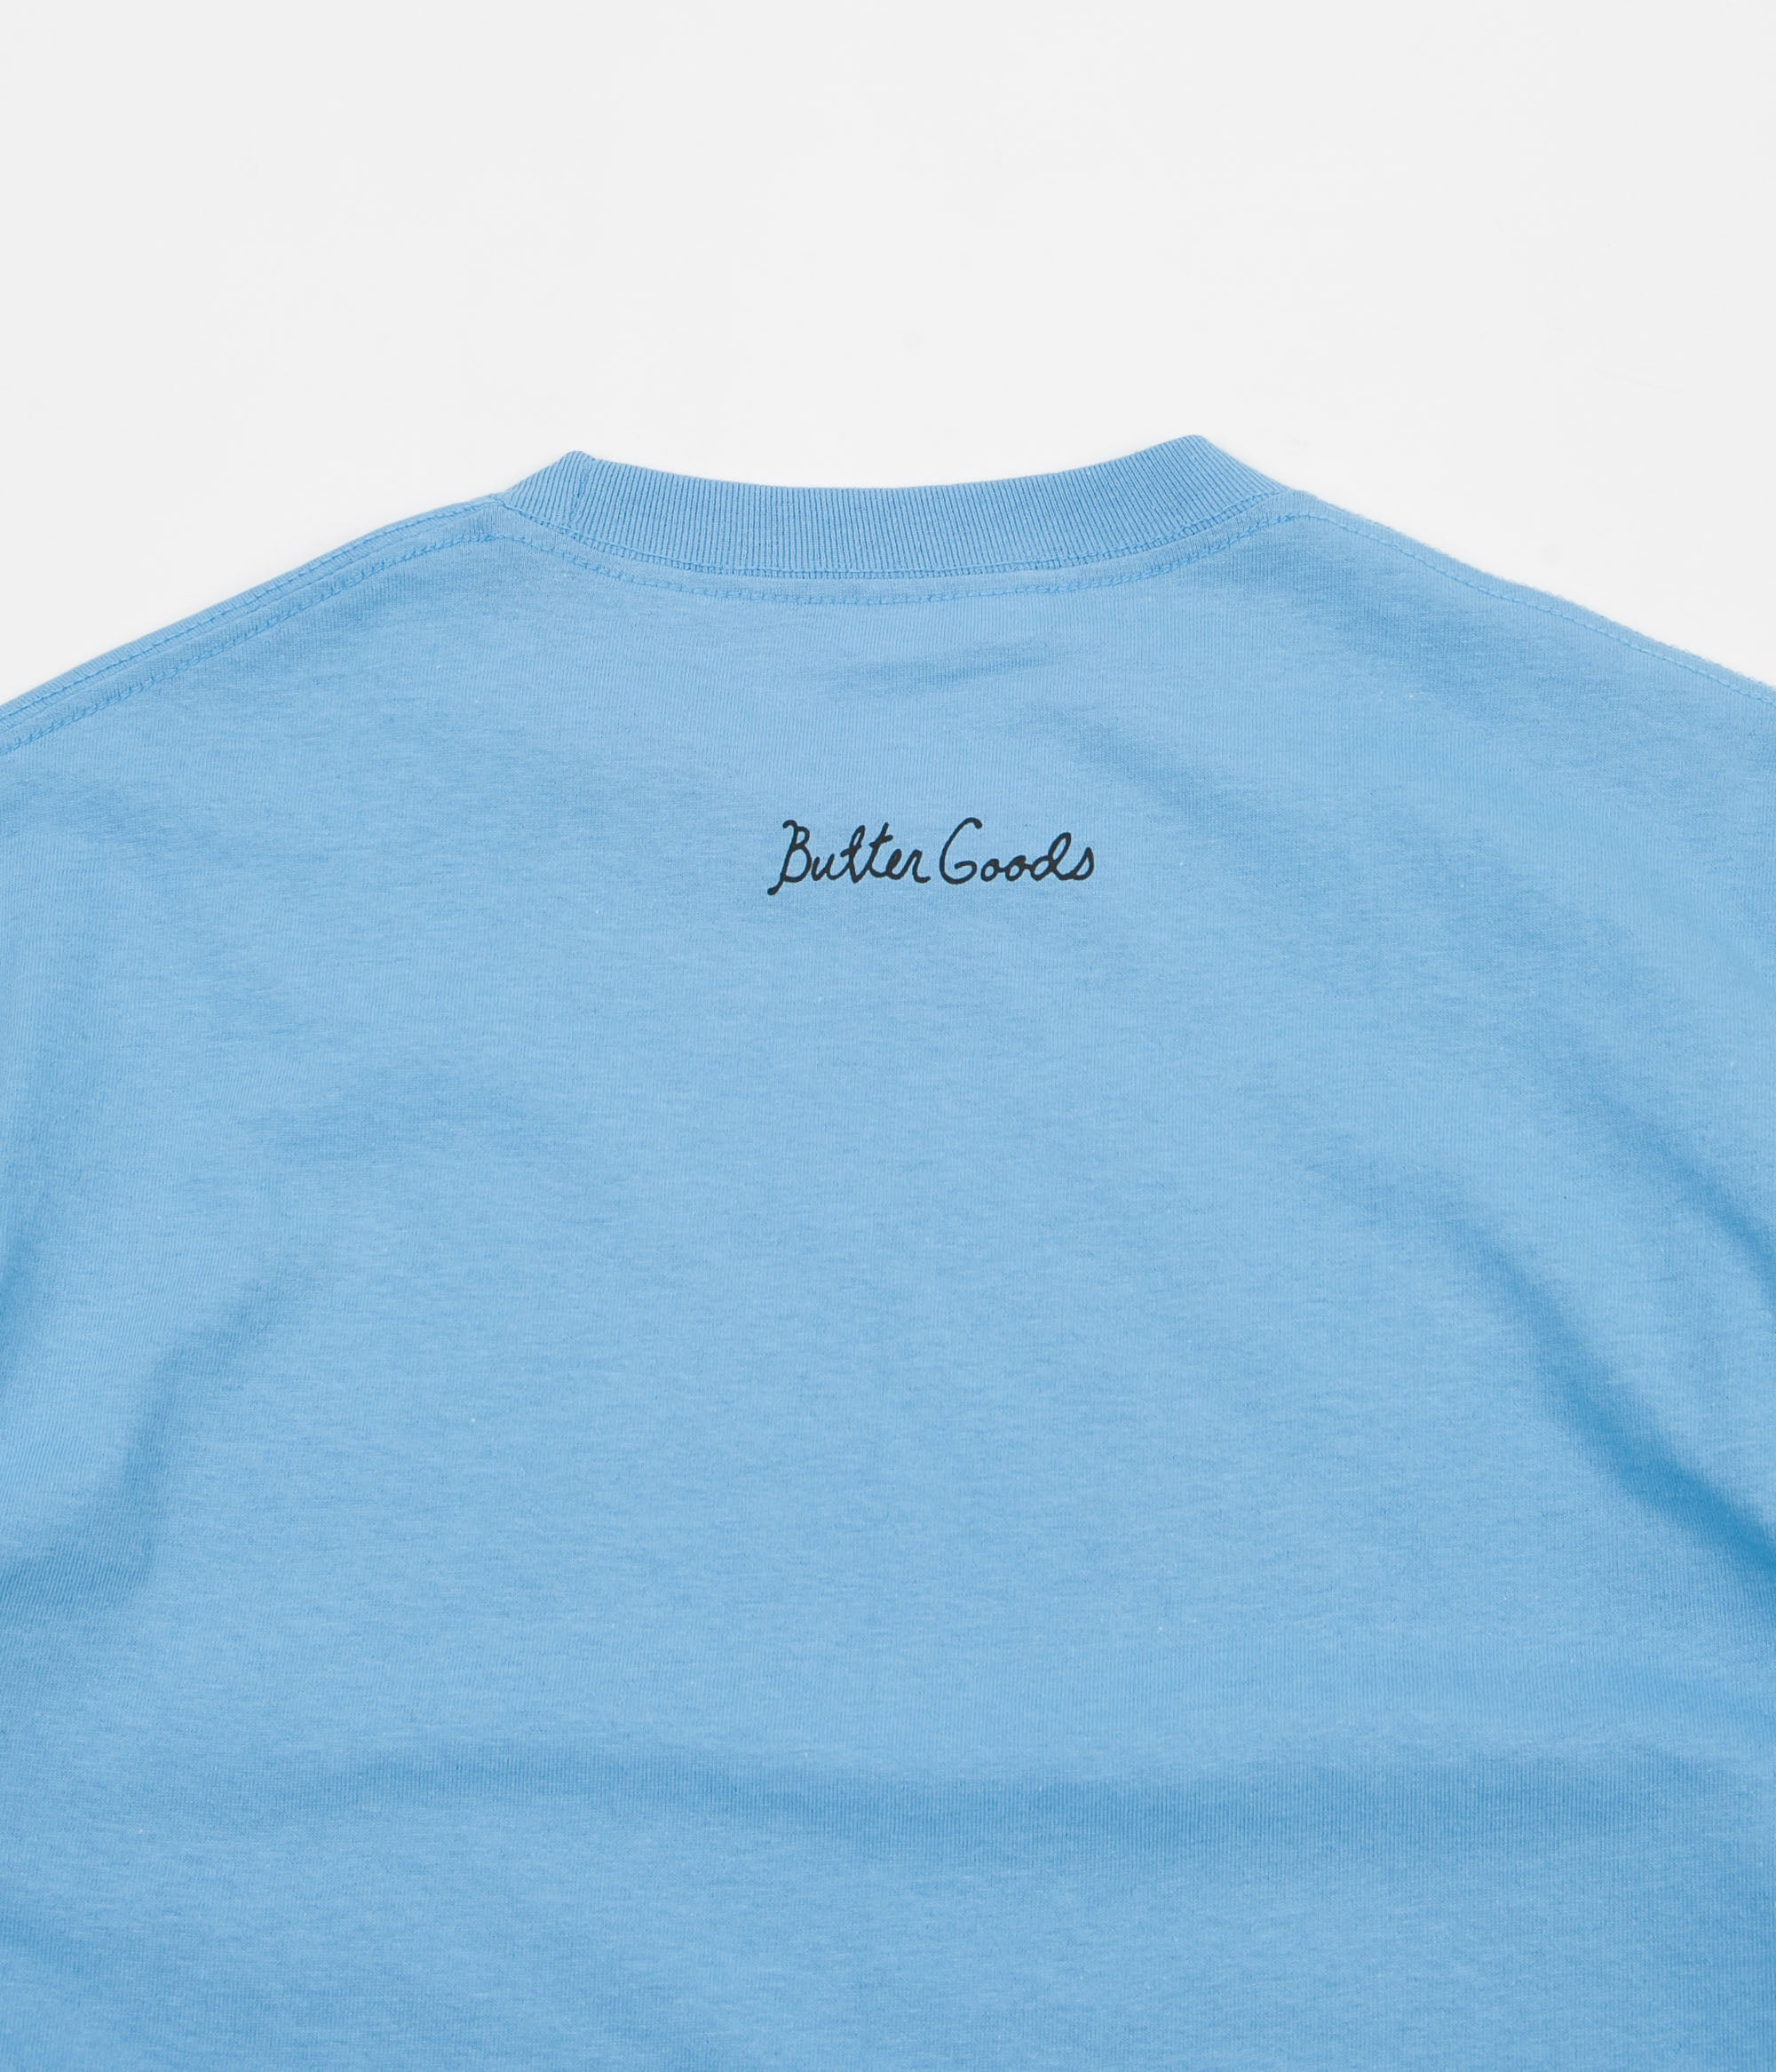 Butter Goods That's All Folks T-Shirt - Carolina Blue